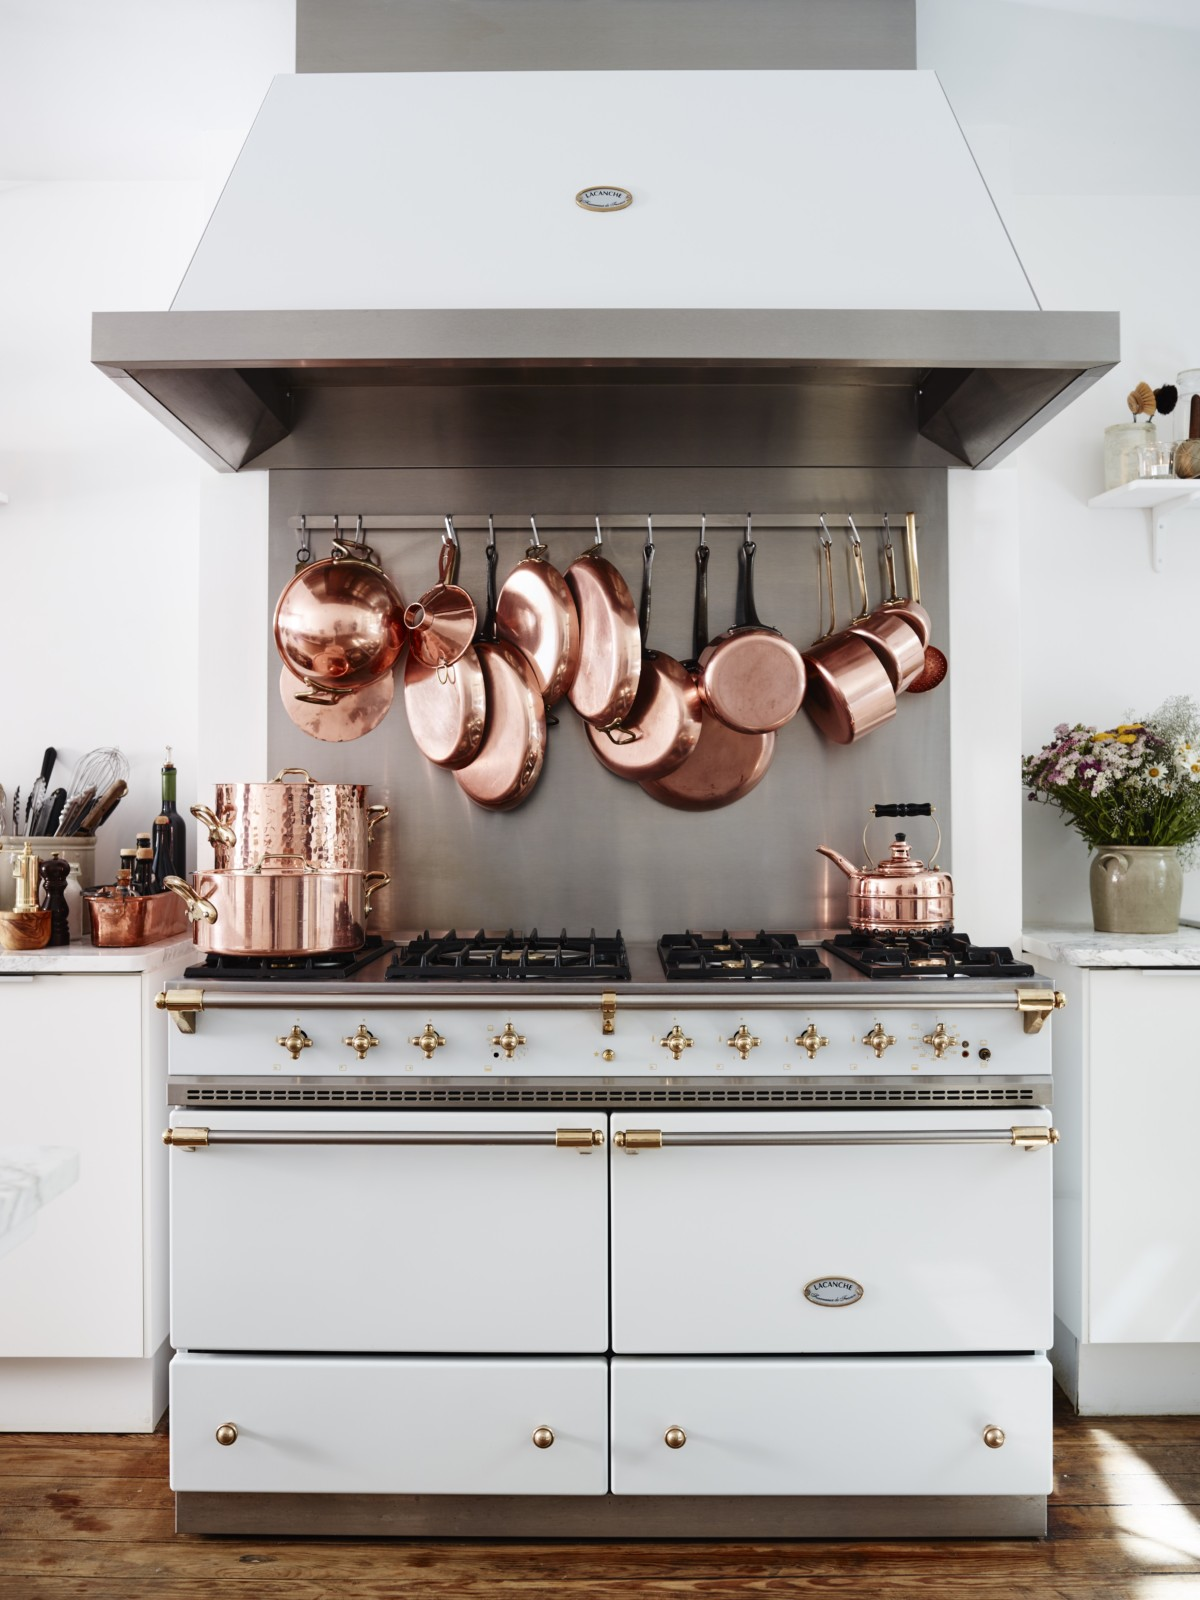 Lacanche Oven Range in white with copper pots and pans hanging